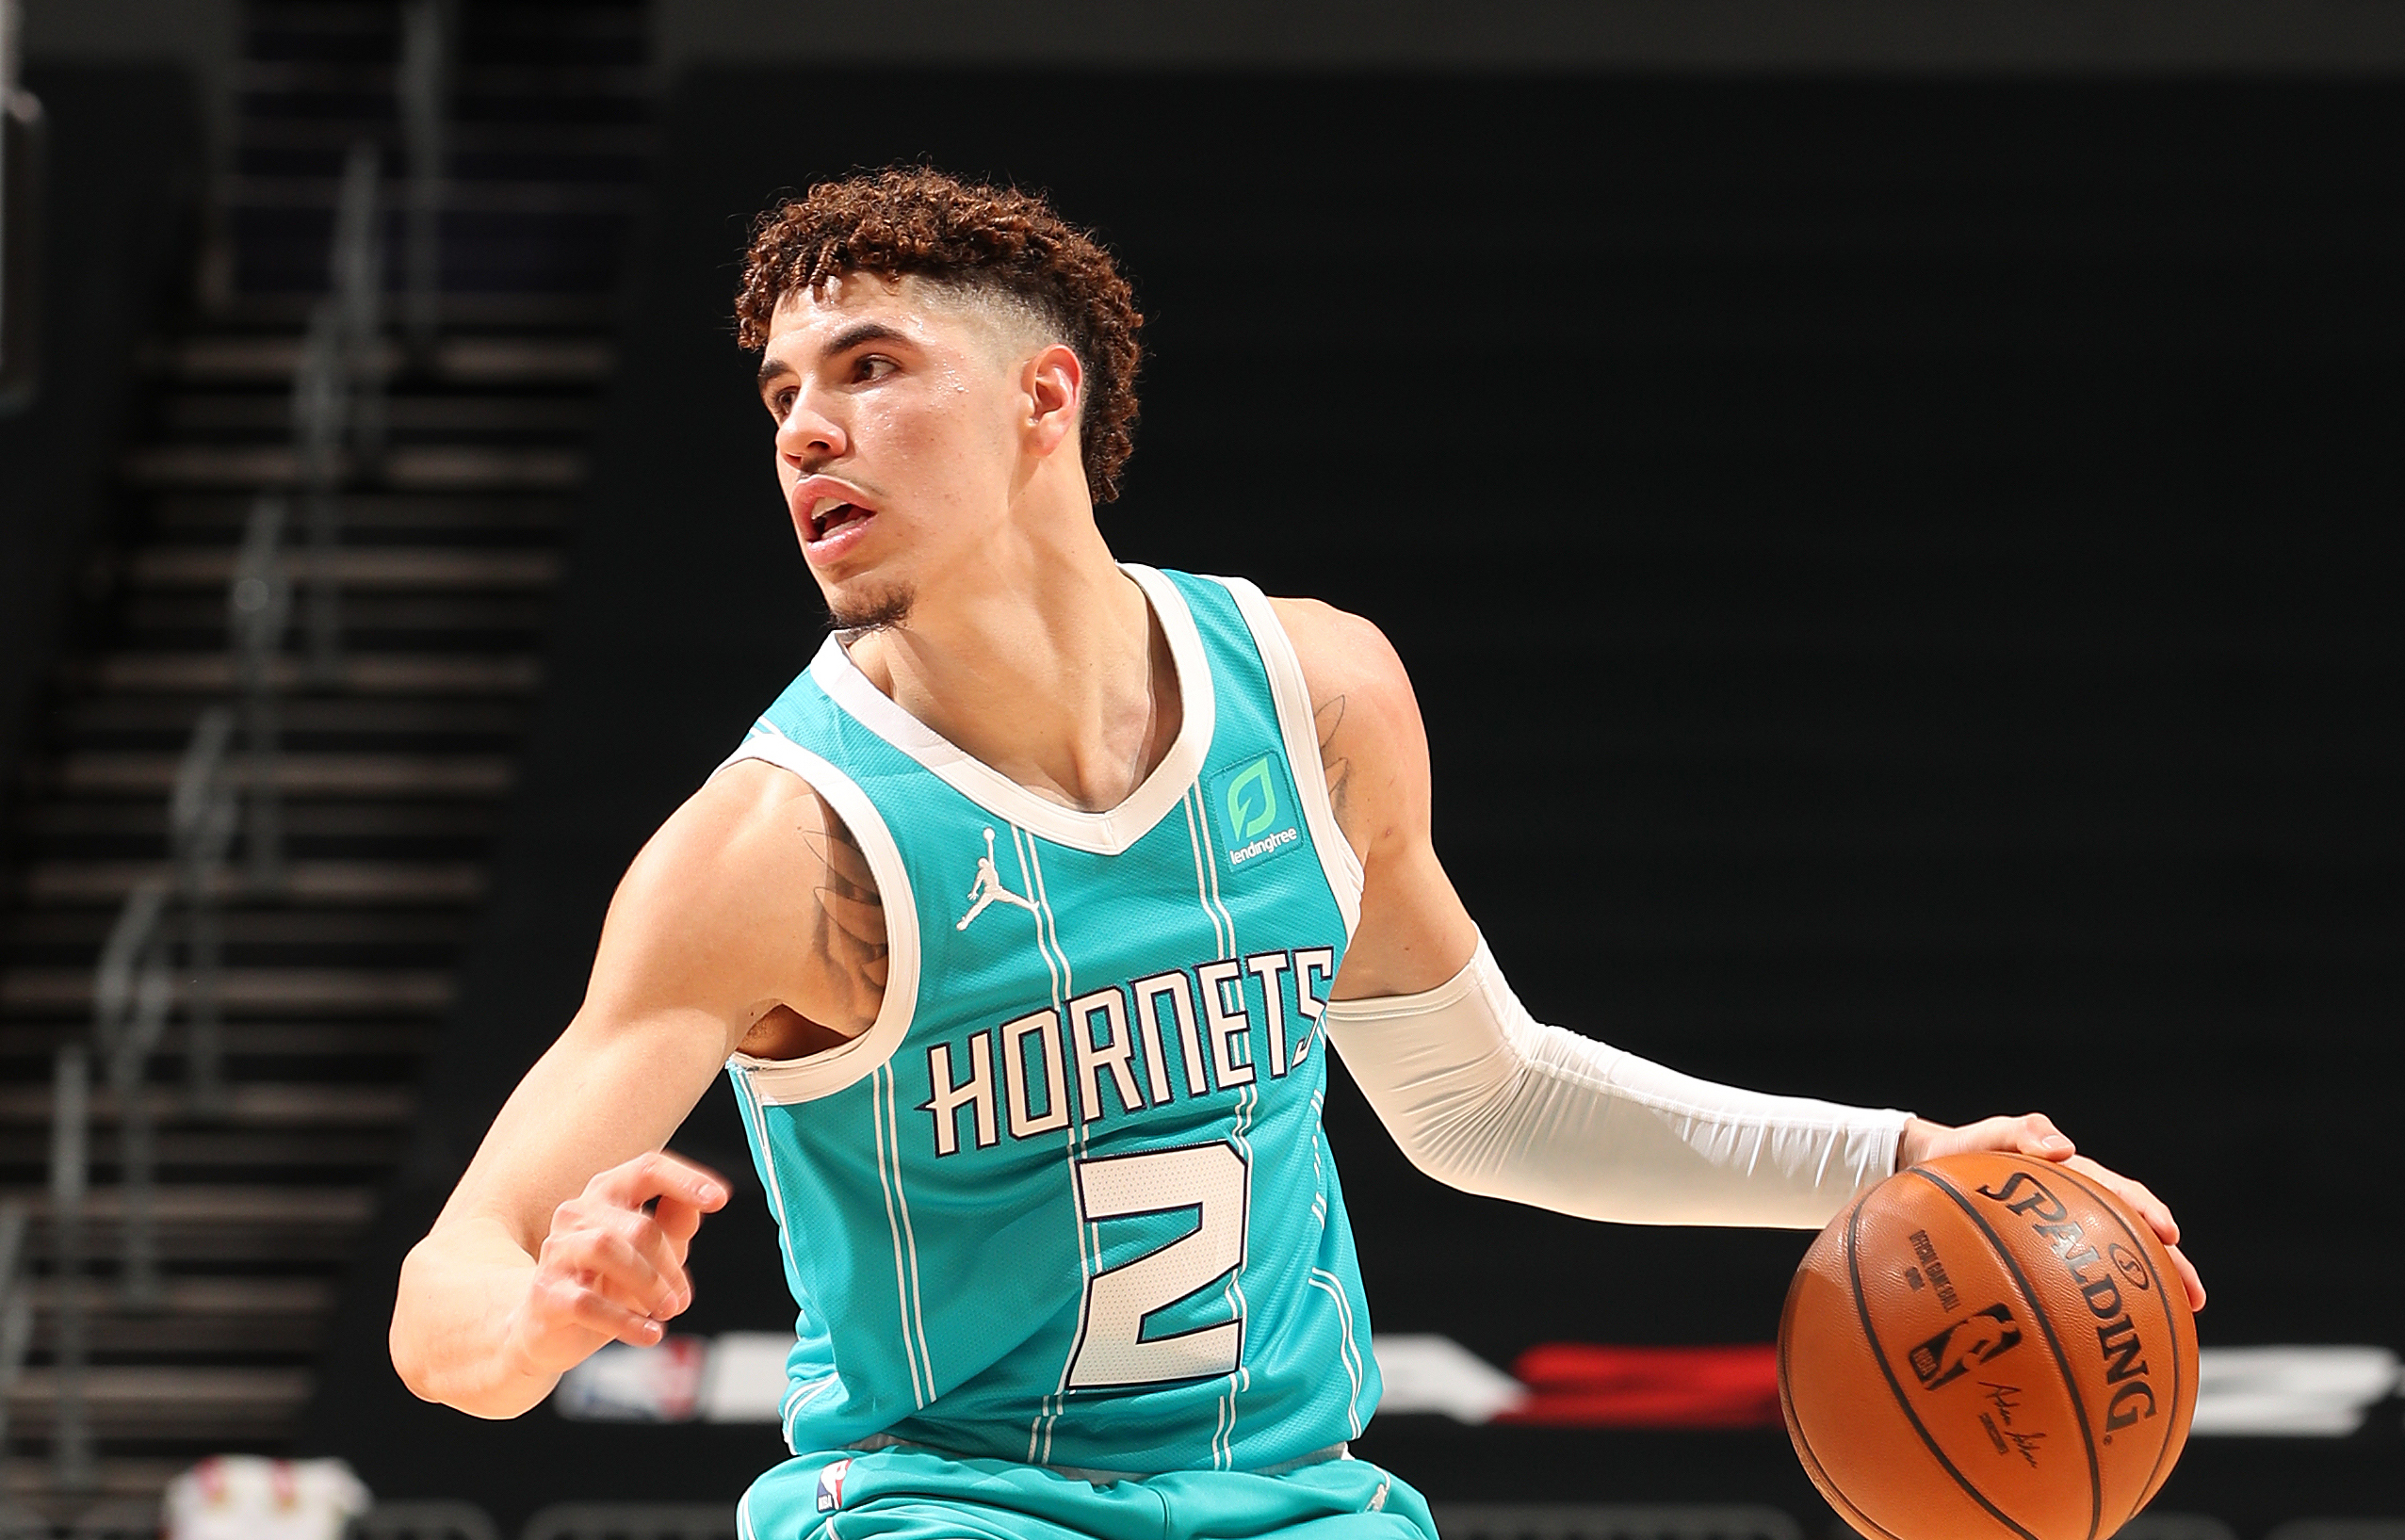 LaMelo Ball (wrist) to be reevaluated in 4 weeks after successful surgery